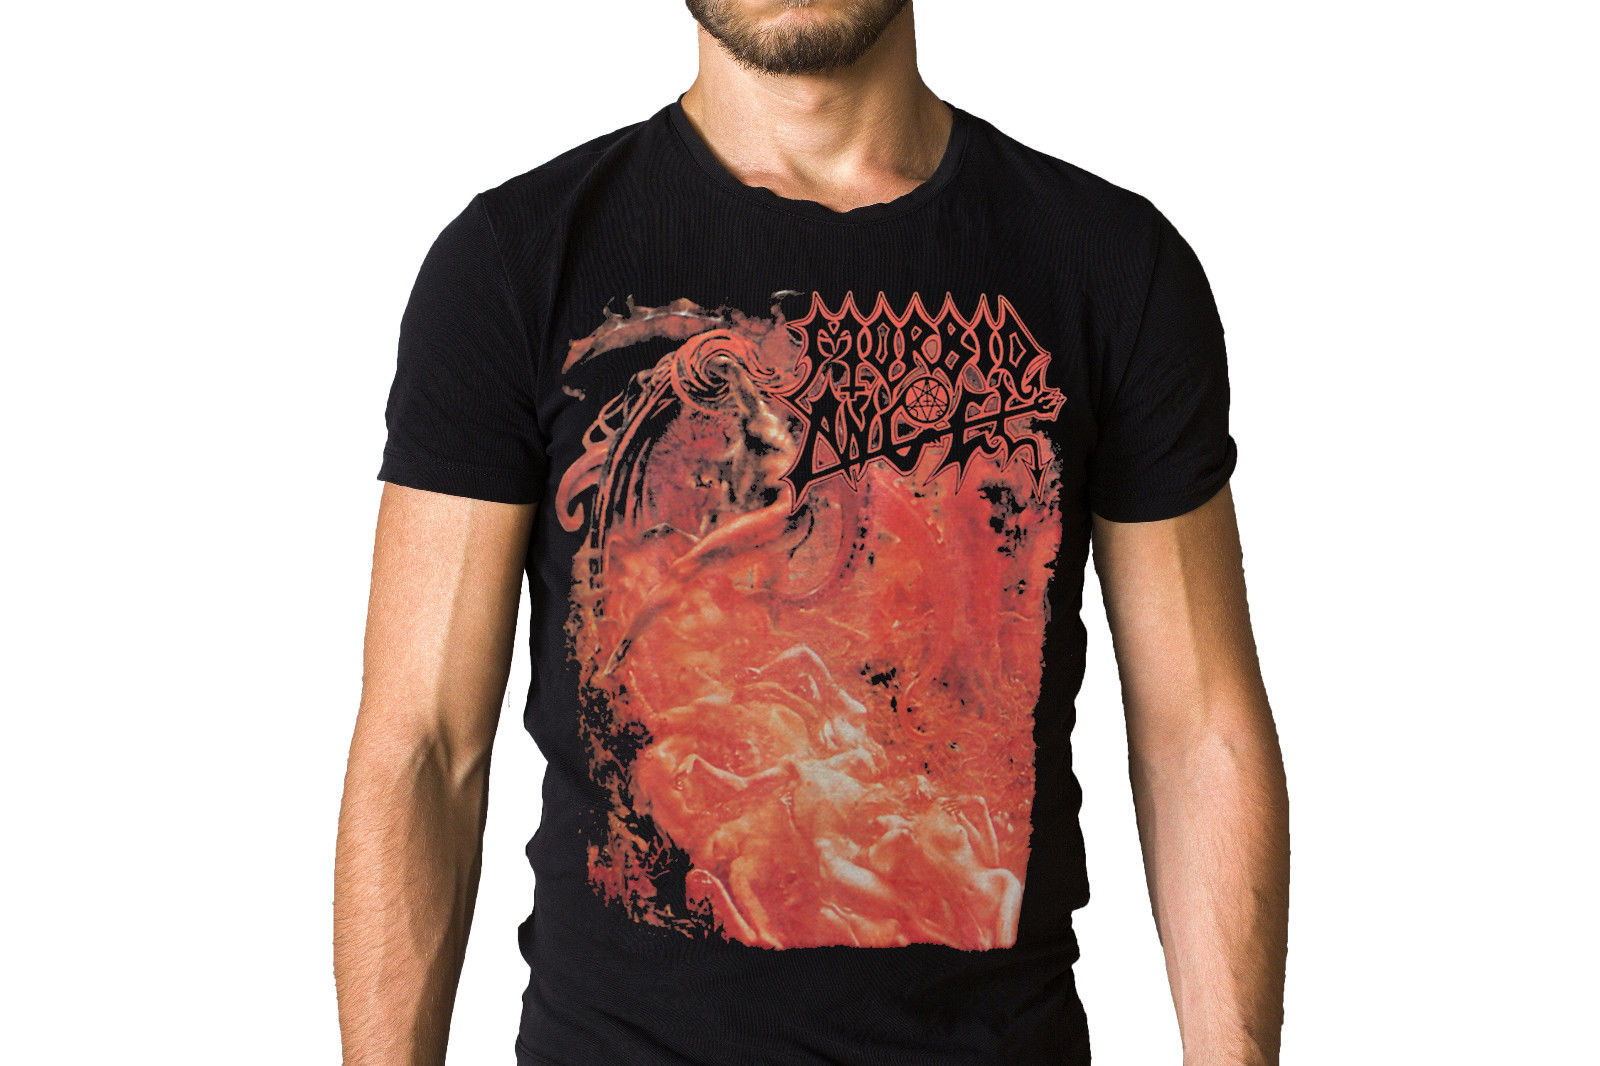 Morbid Angel Band Blessed Are The Sick 1991 Album Cover T-Shirt